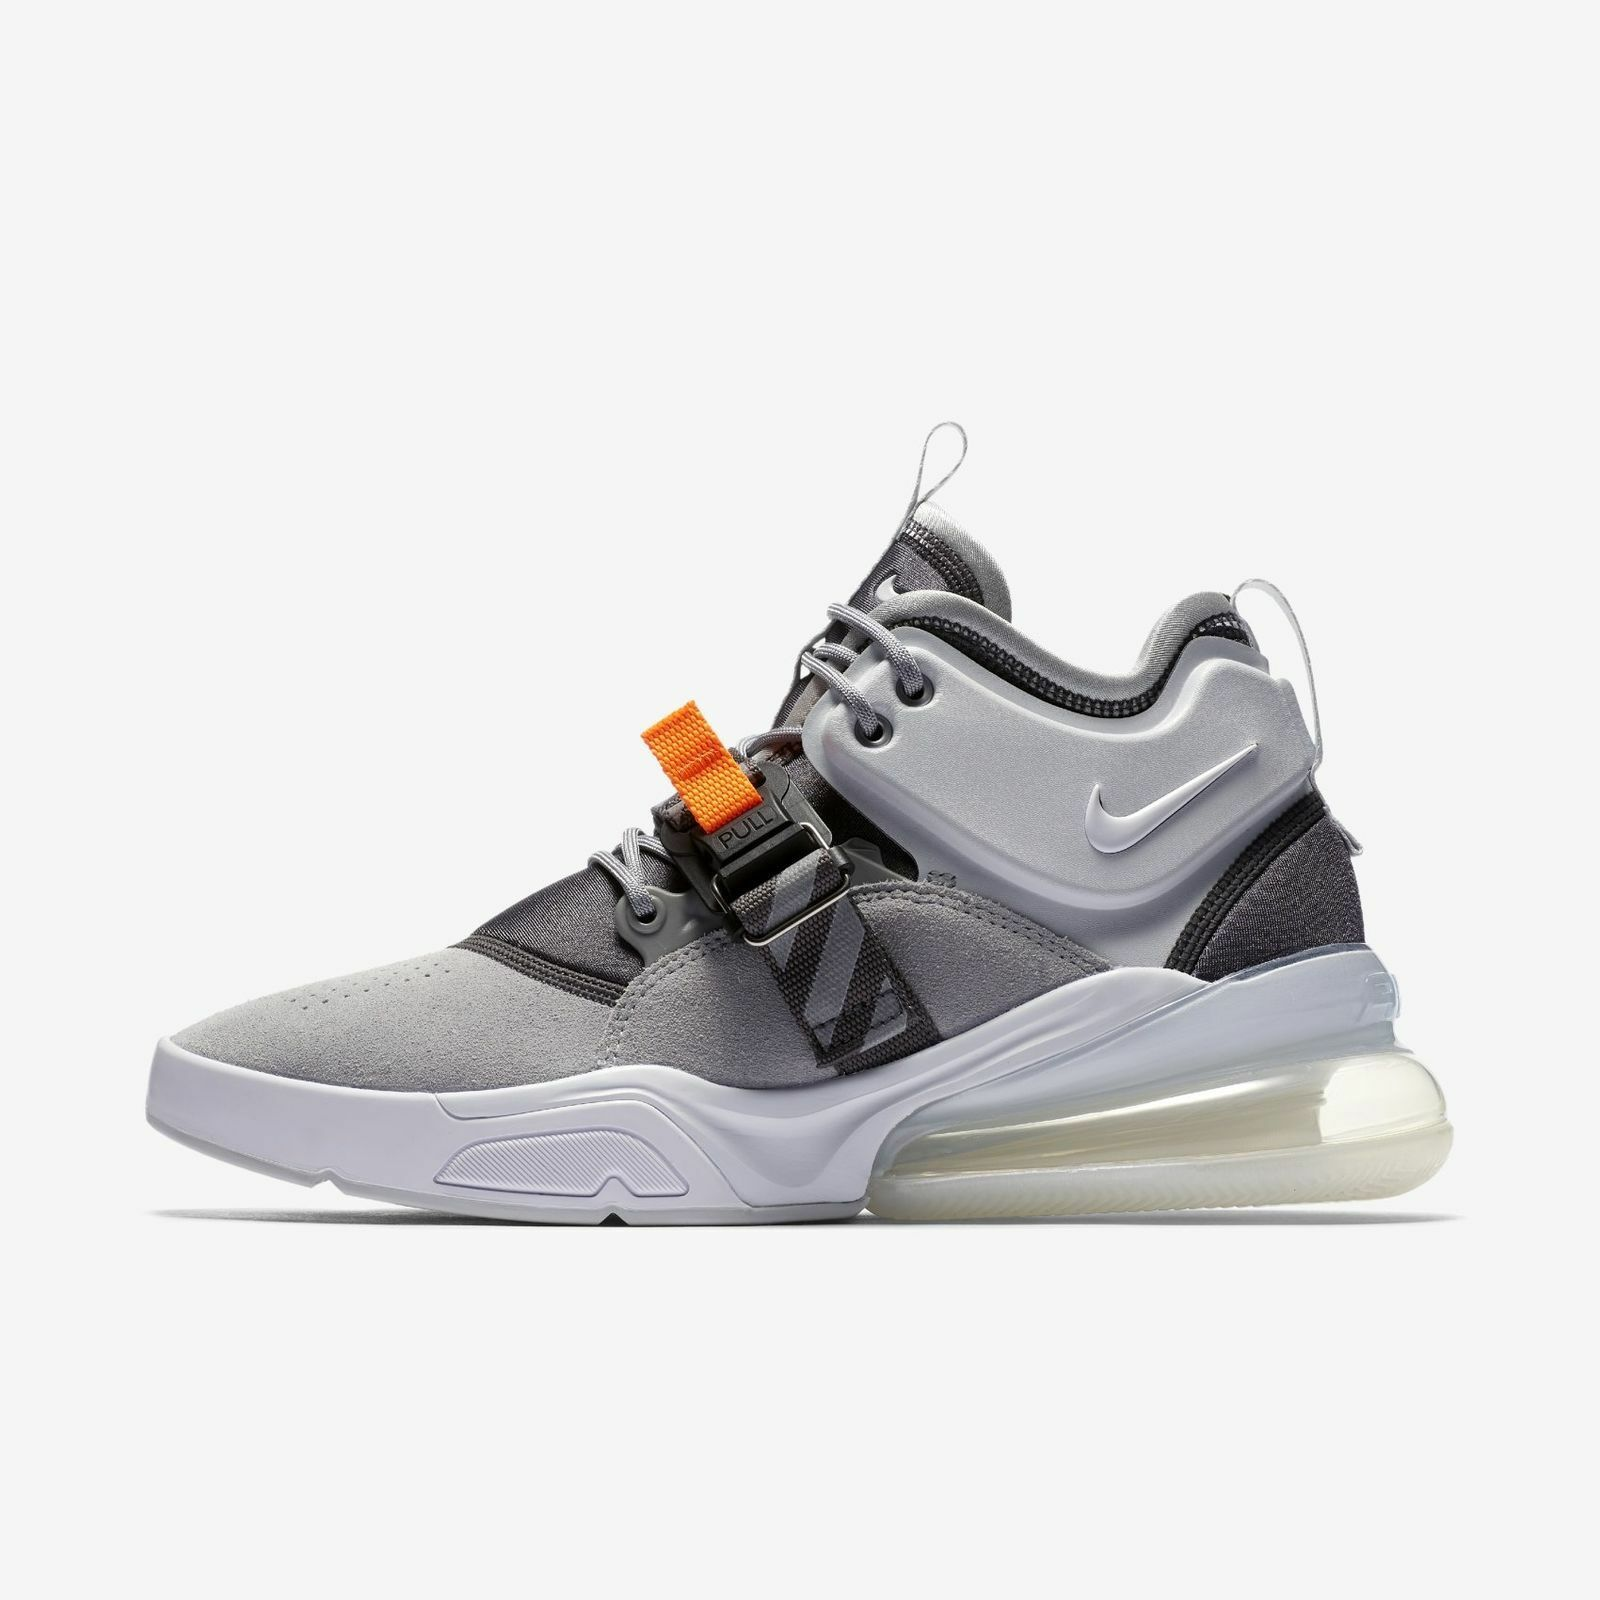 New Nike Air Max 270 Wolf Grey White Dark Grey Sail Orange Size 9.5 AH6722 002